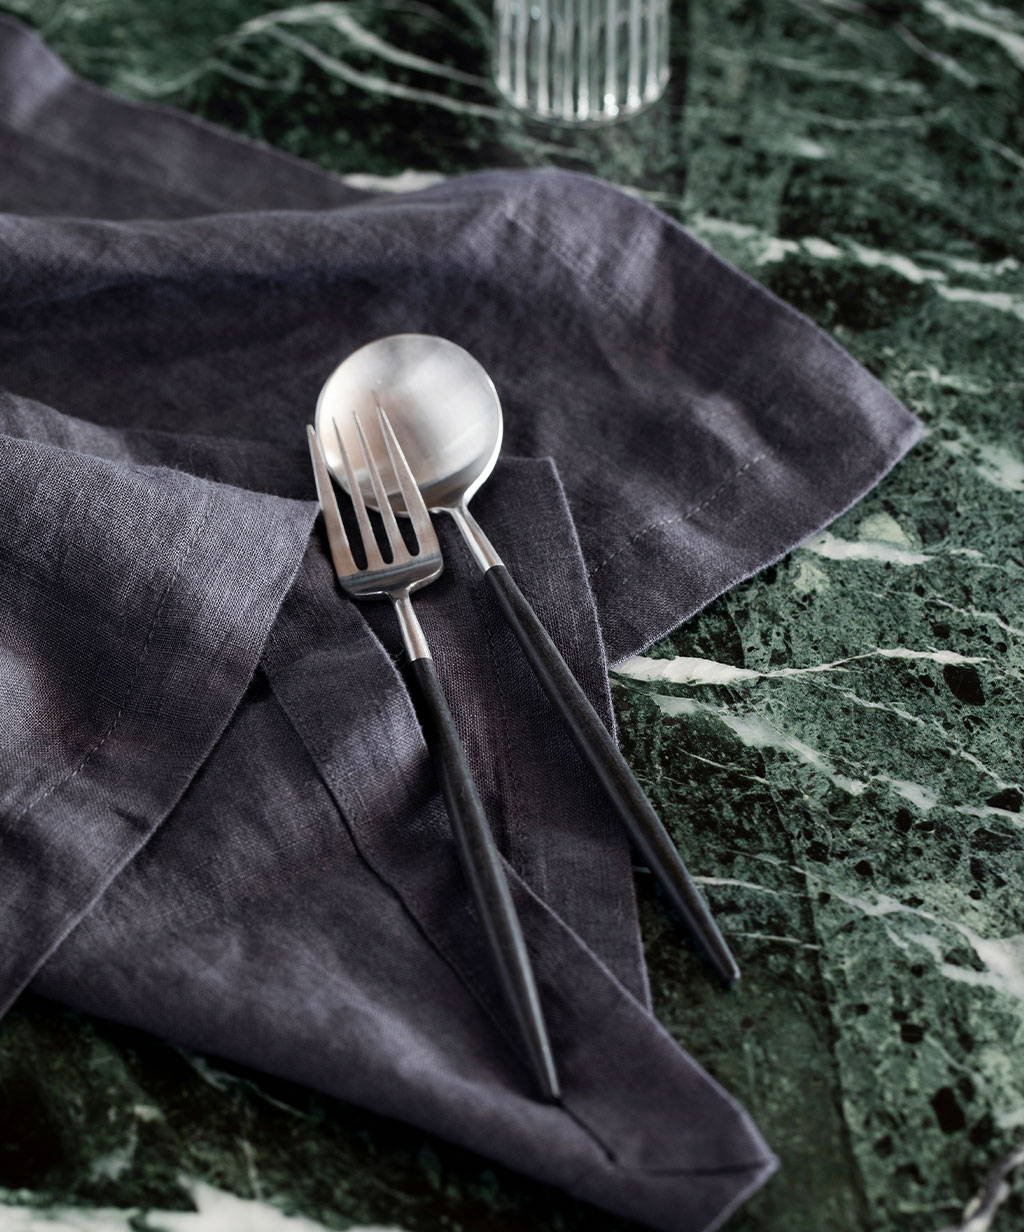 A fork and spoon from the Piper cutlery set by Stanley Rogers resting on the Linen Table Napkin in Slate.